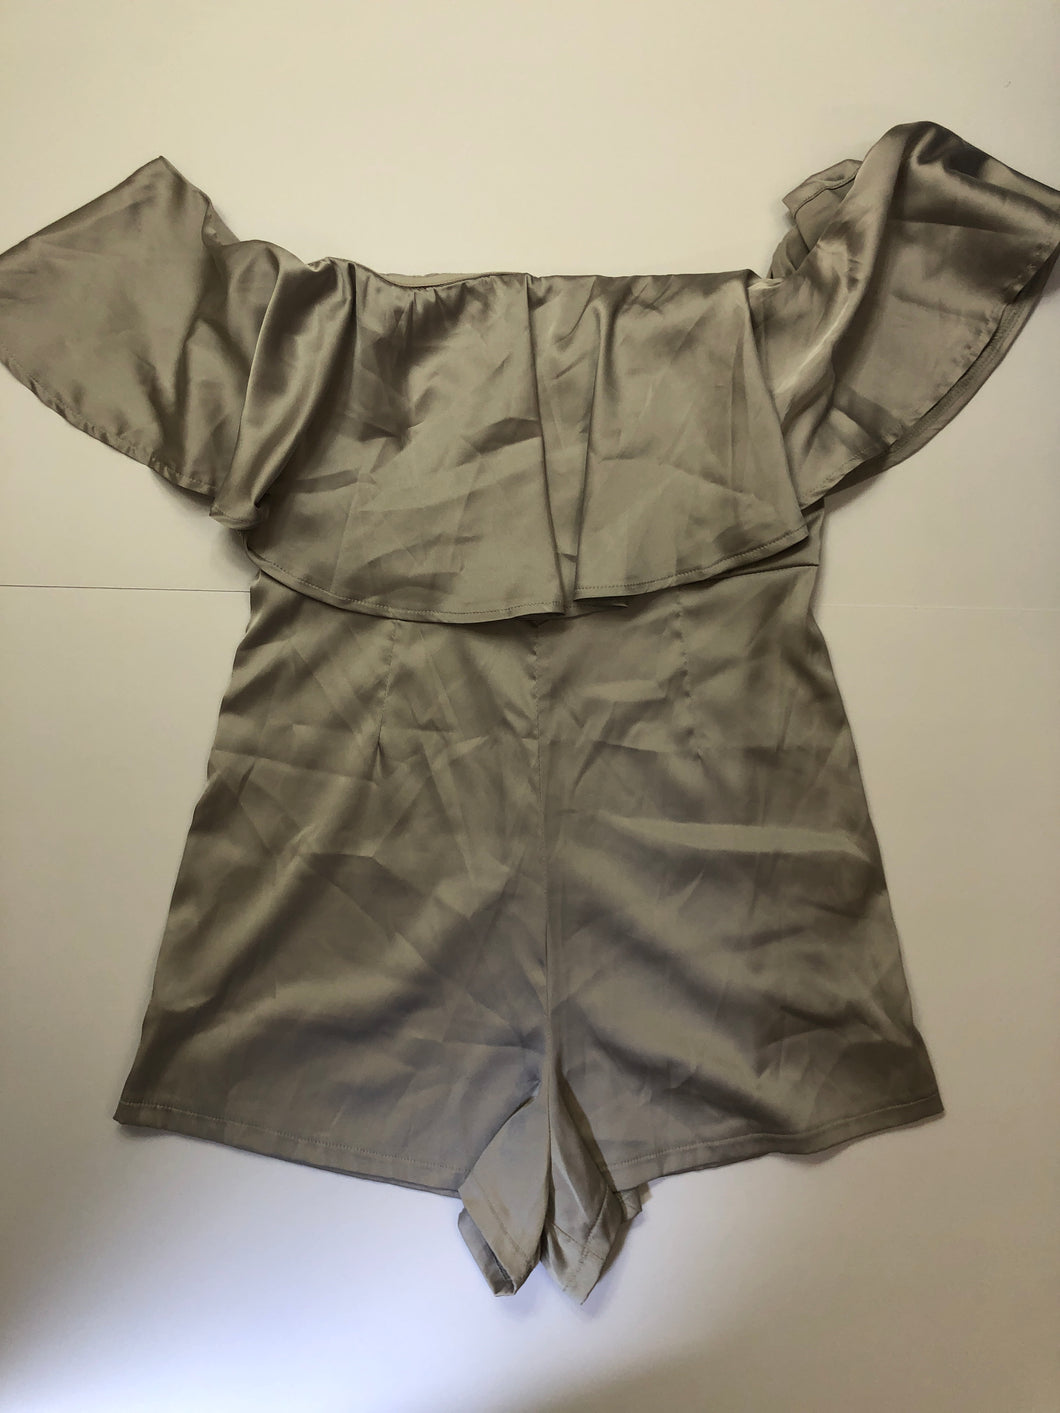 Previously Owned With Tags Women's Solaris Style Romper Size S